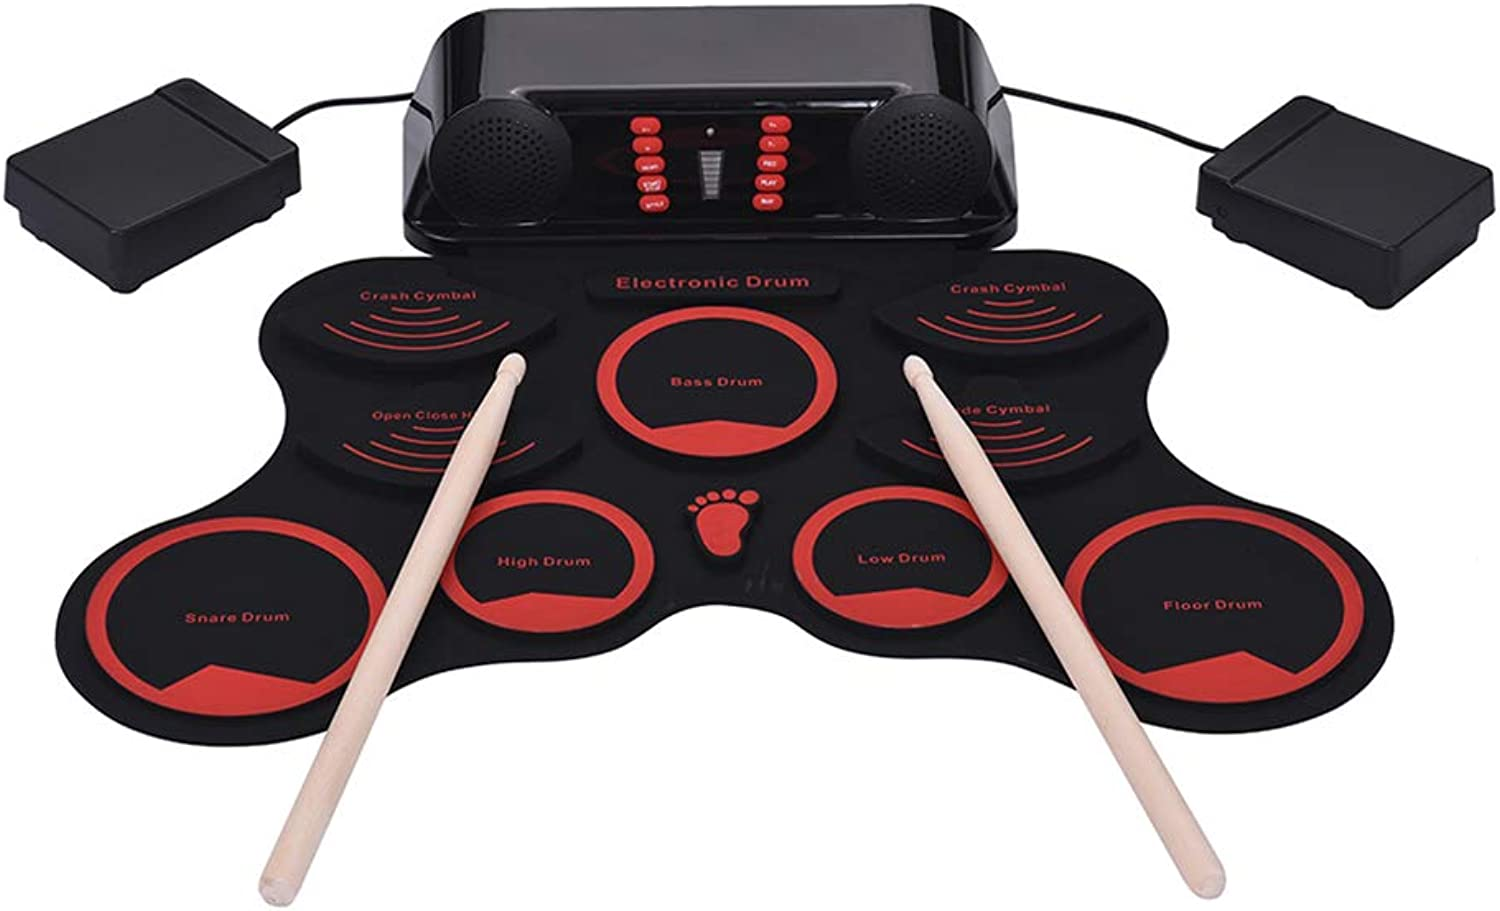 Portable Electronic Drum Set, Digital Electronic Drum Kit 9 Silicon Drum Pads Built-in Double Speakers with Drumsticks Foot Pedals USB Cable